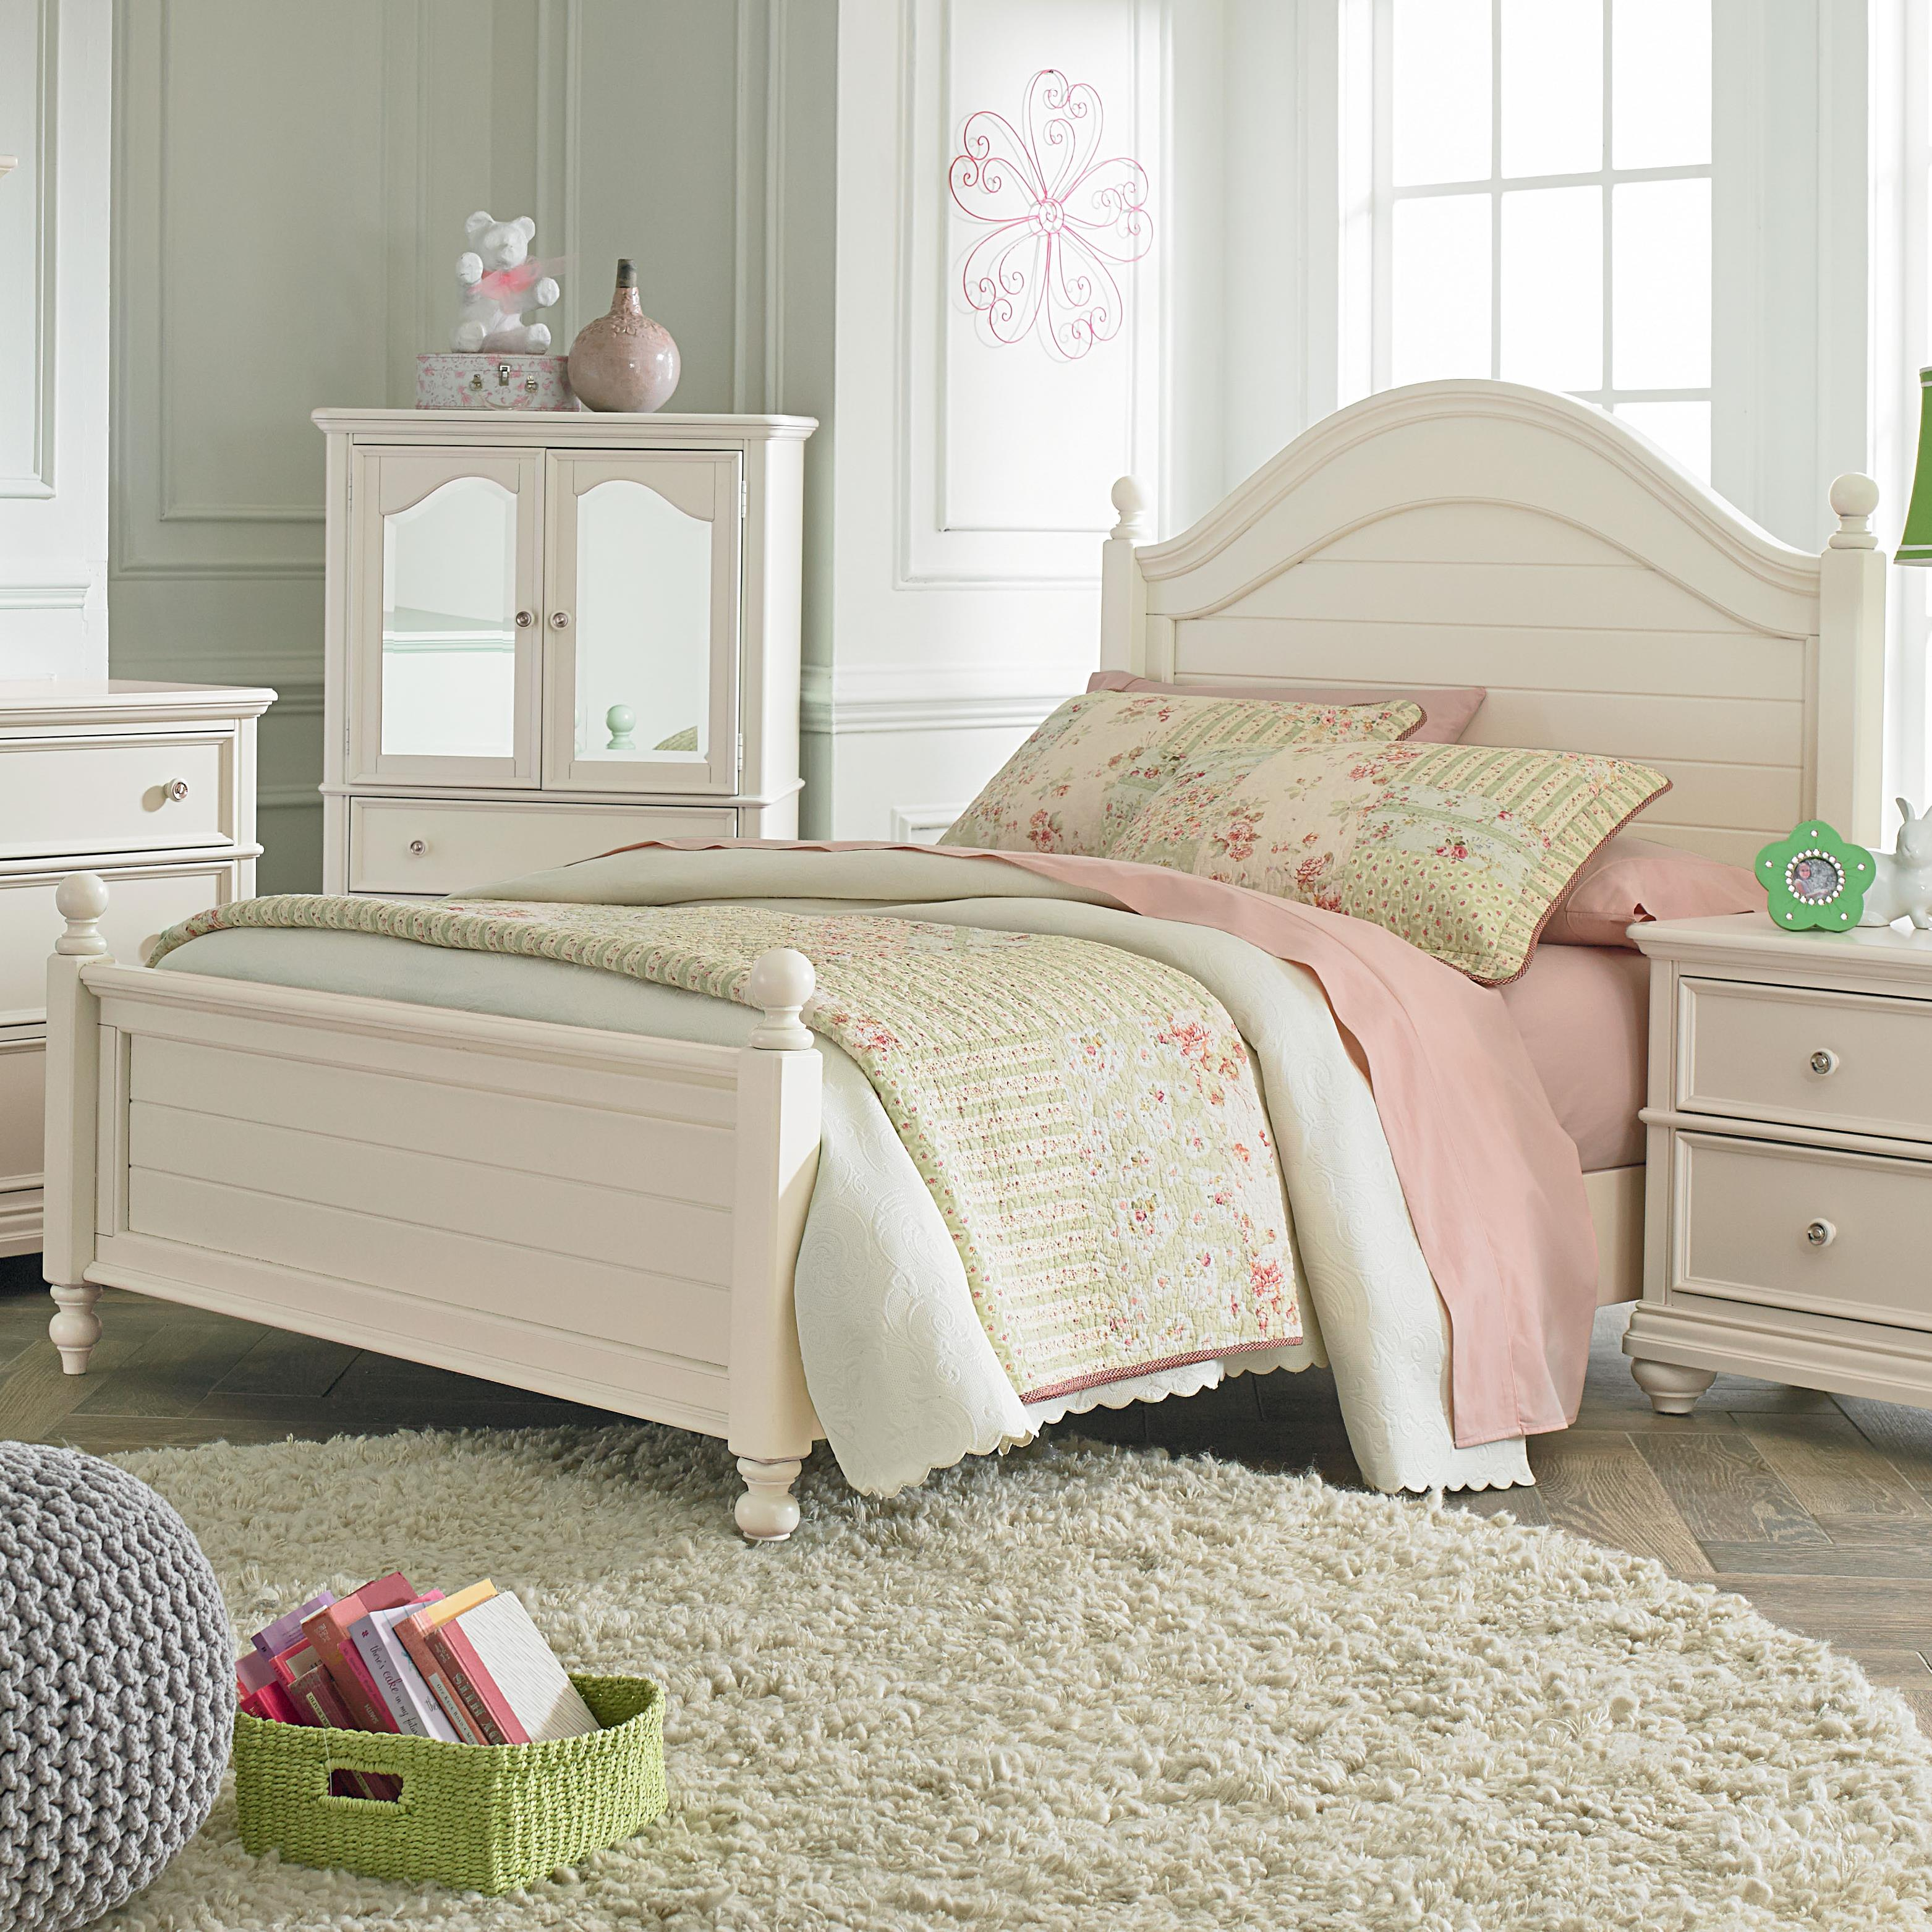 Standard Furniture Camellia Marshmallow Full Bed with Cannonball Bed Posts - Item Number: 95202+04+06